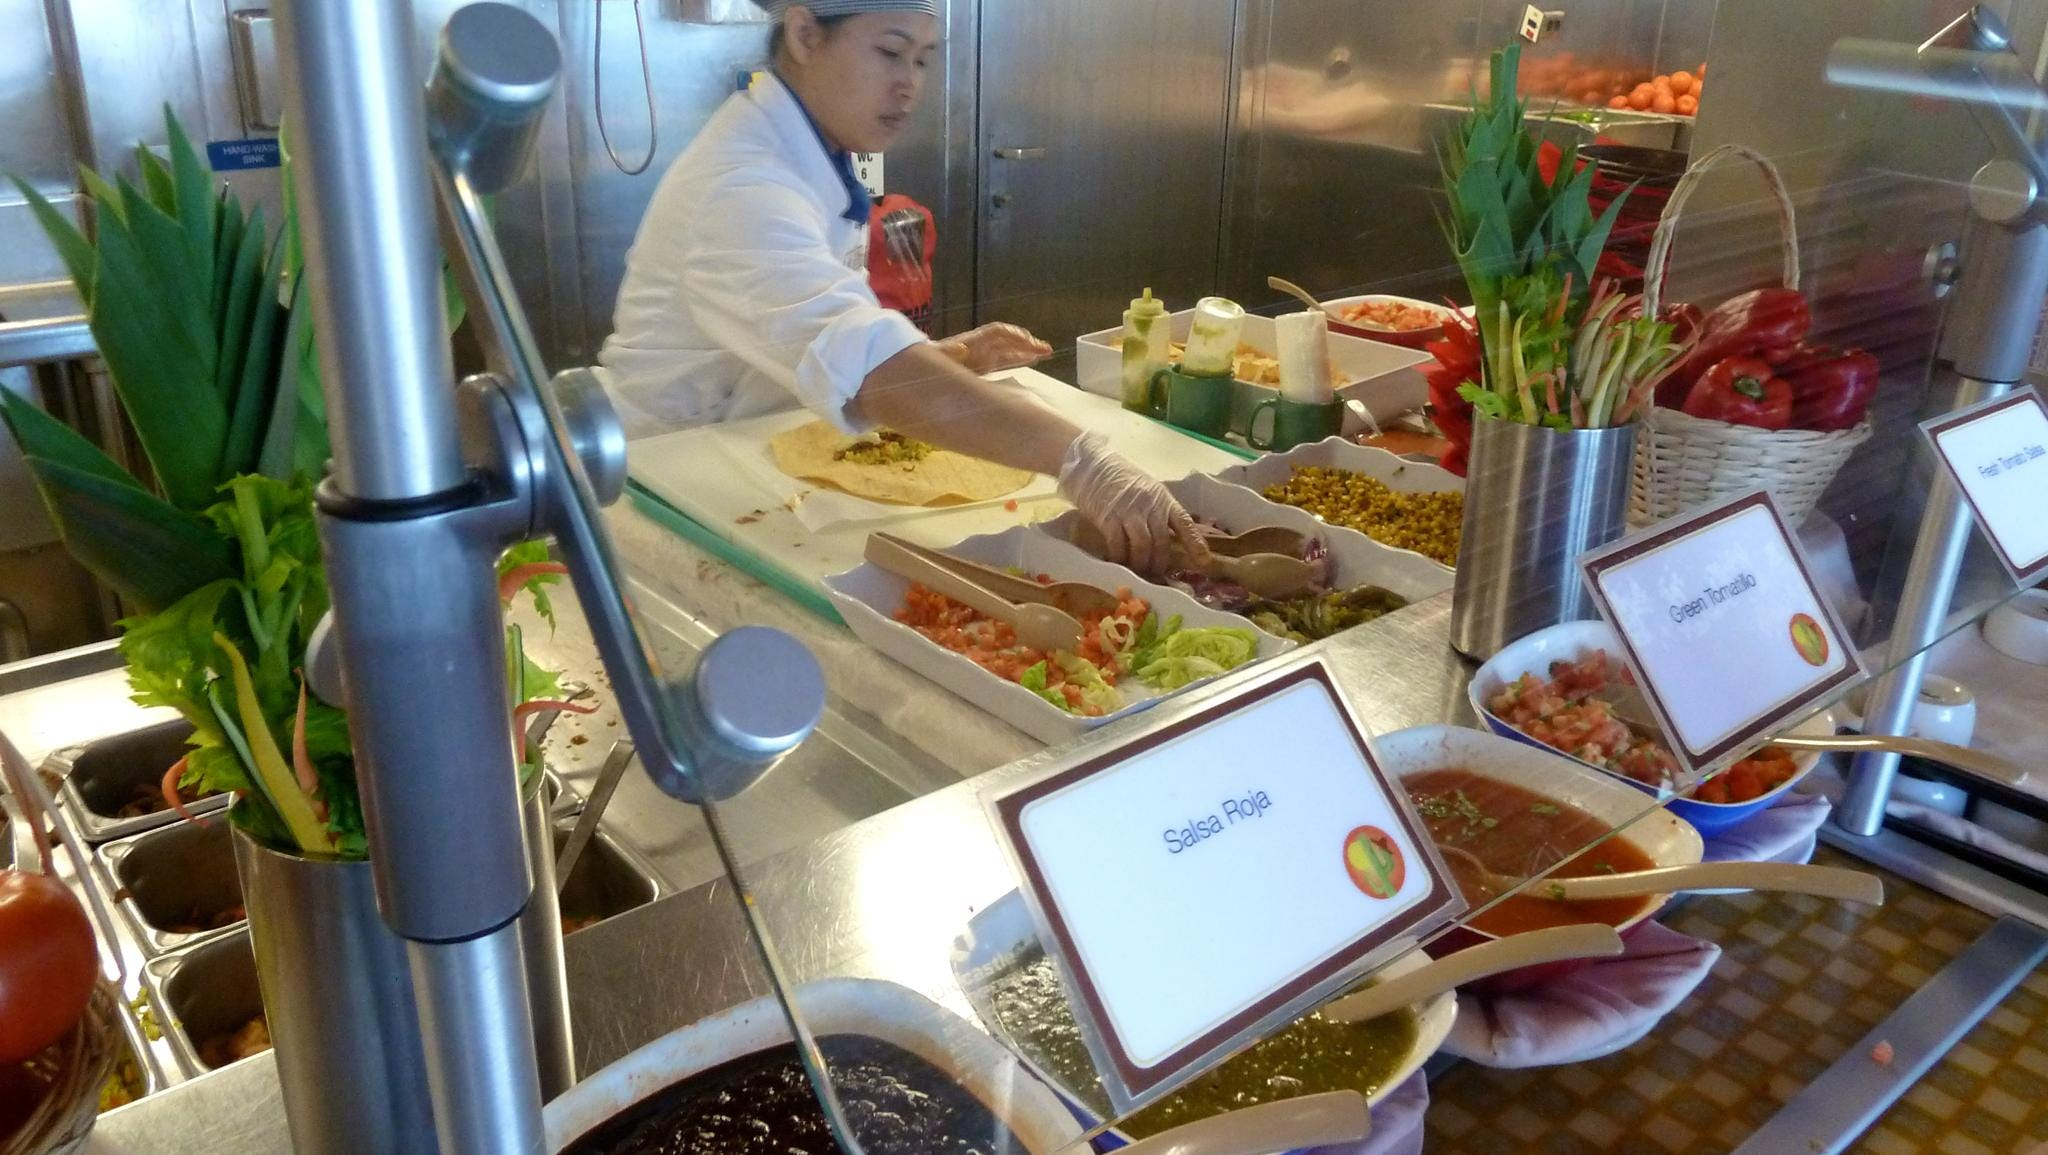 Rosie's even has a Burrito Bar with freshly prepared ingredients and several kinds of salsa.